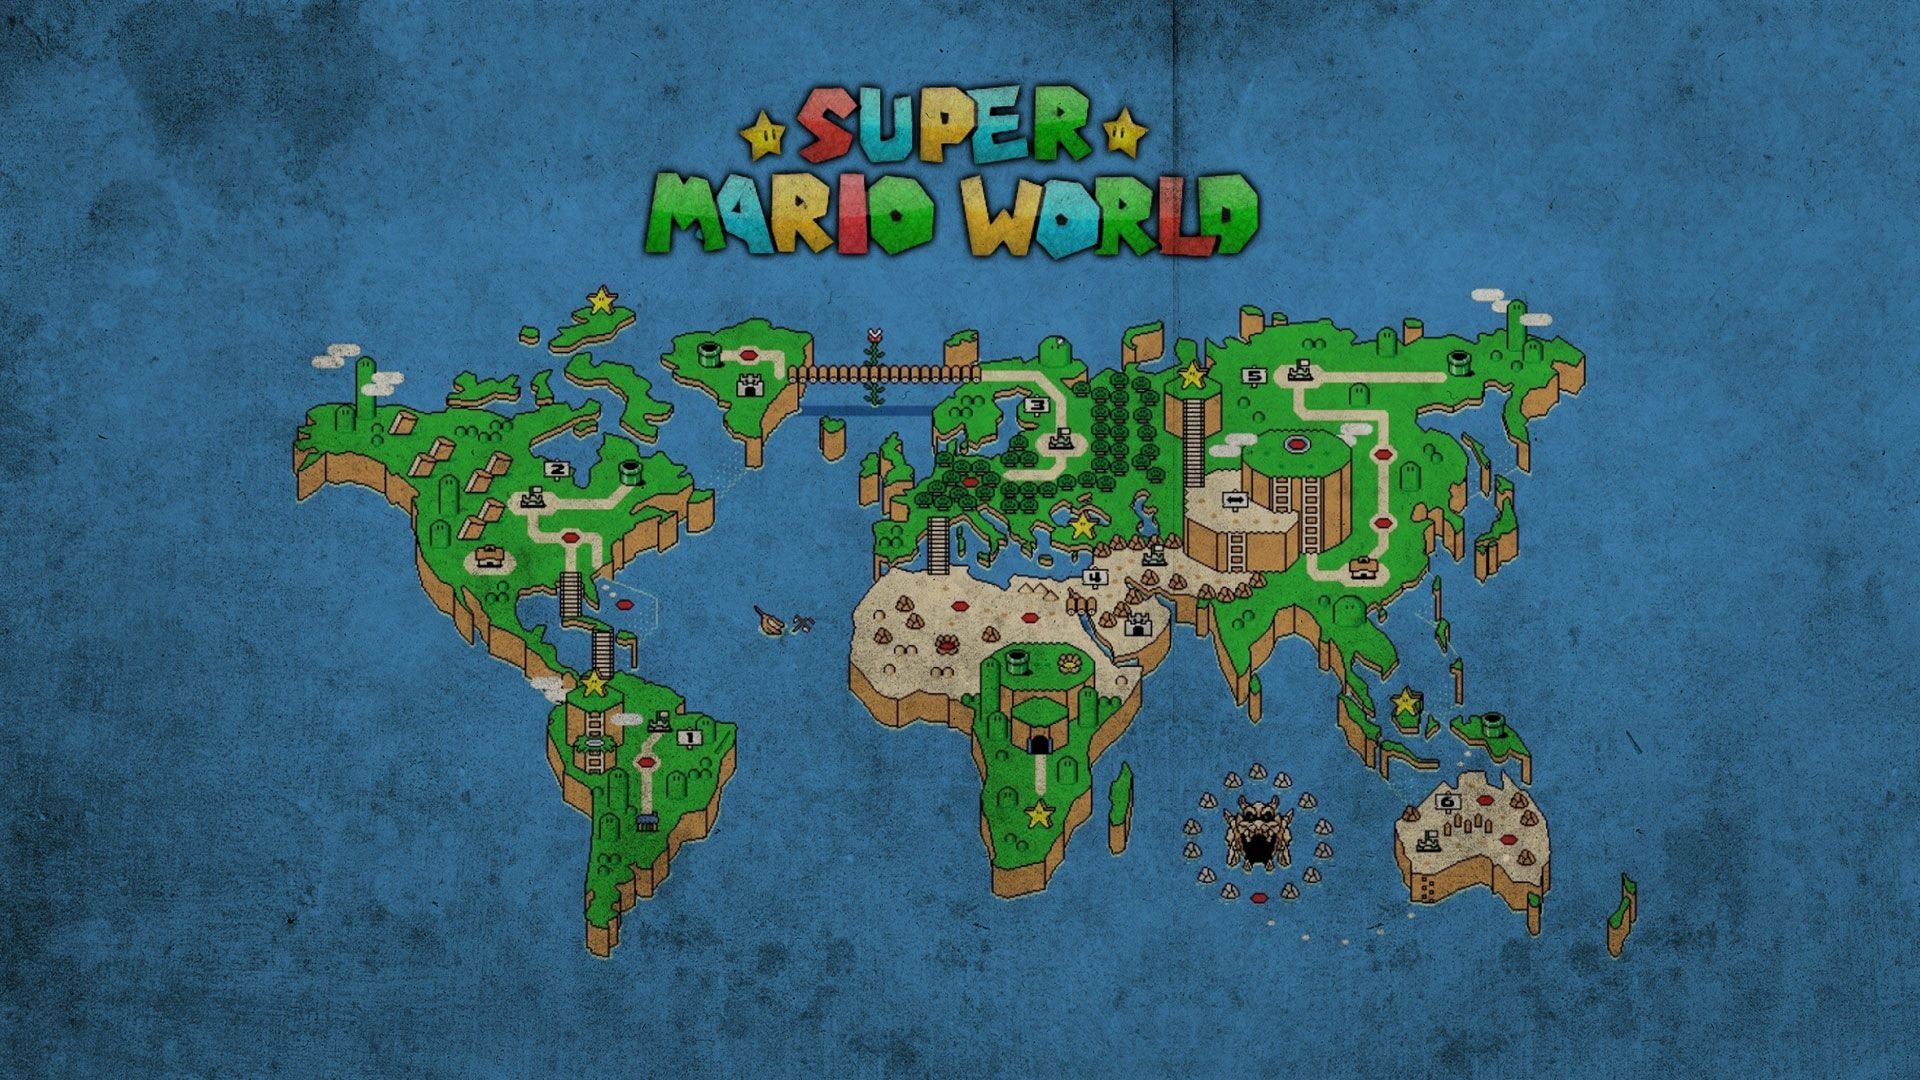 Super Mario World Wallpaper